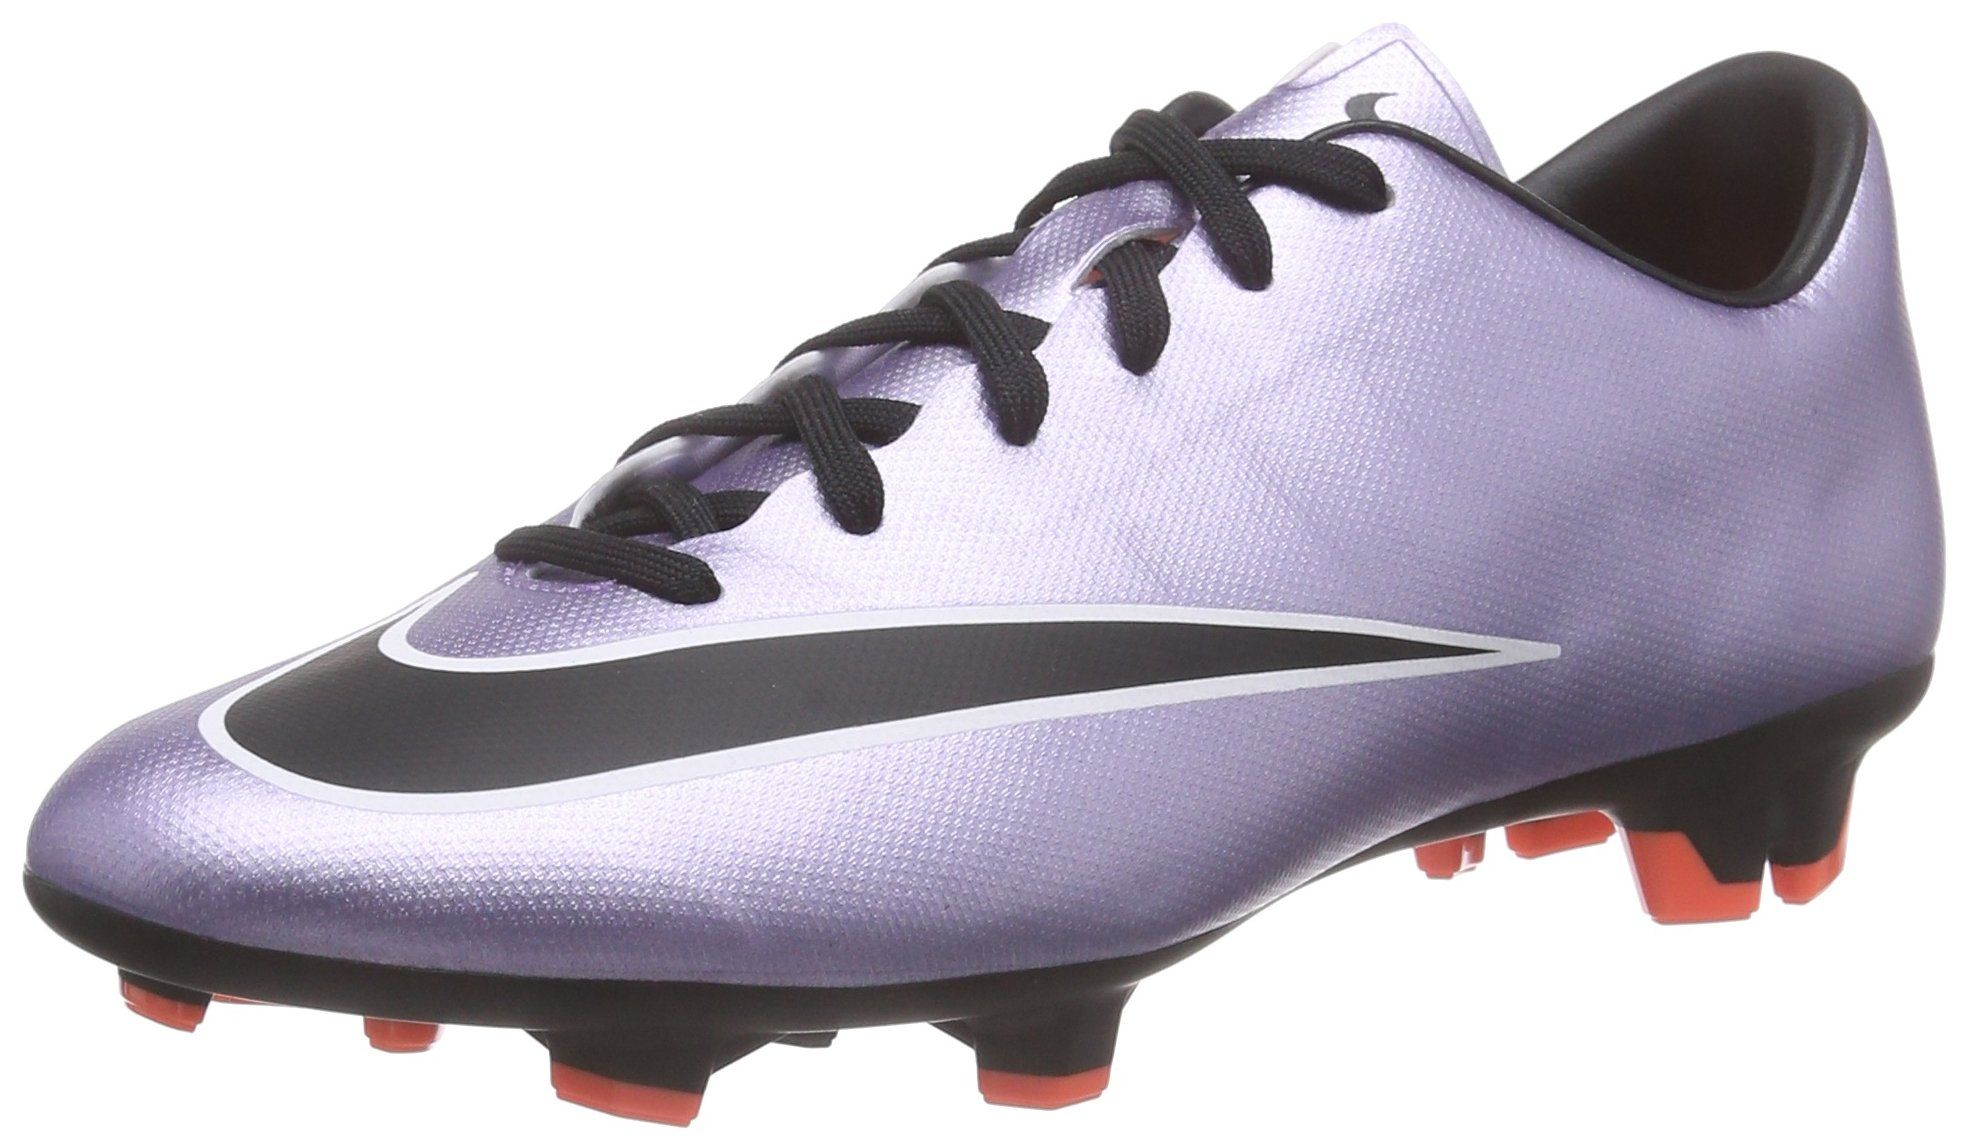 99be71b0acd4 nike mercurial victory V FG mens football boots 651632 soccer cleats firm  ground US 10.5 urban lilac black bright mango white 580     Find out more  about ...